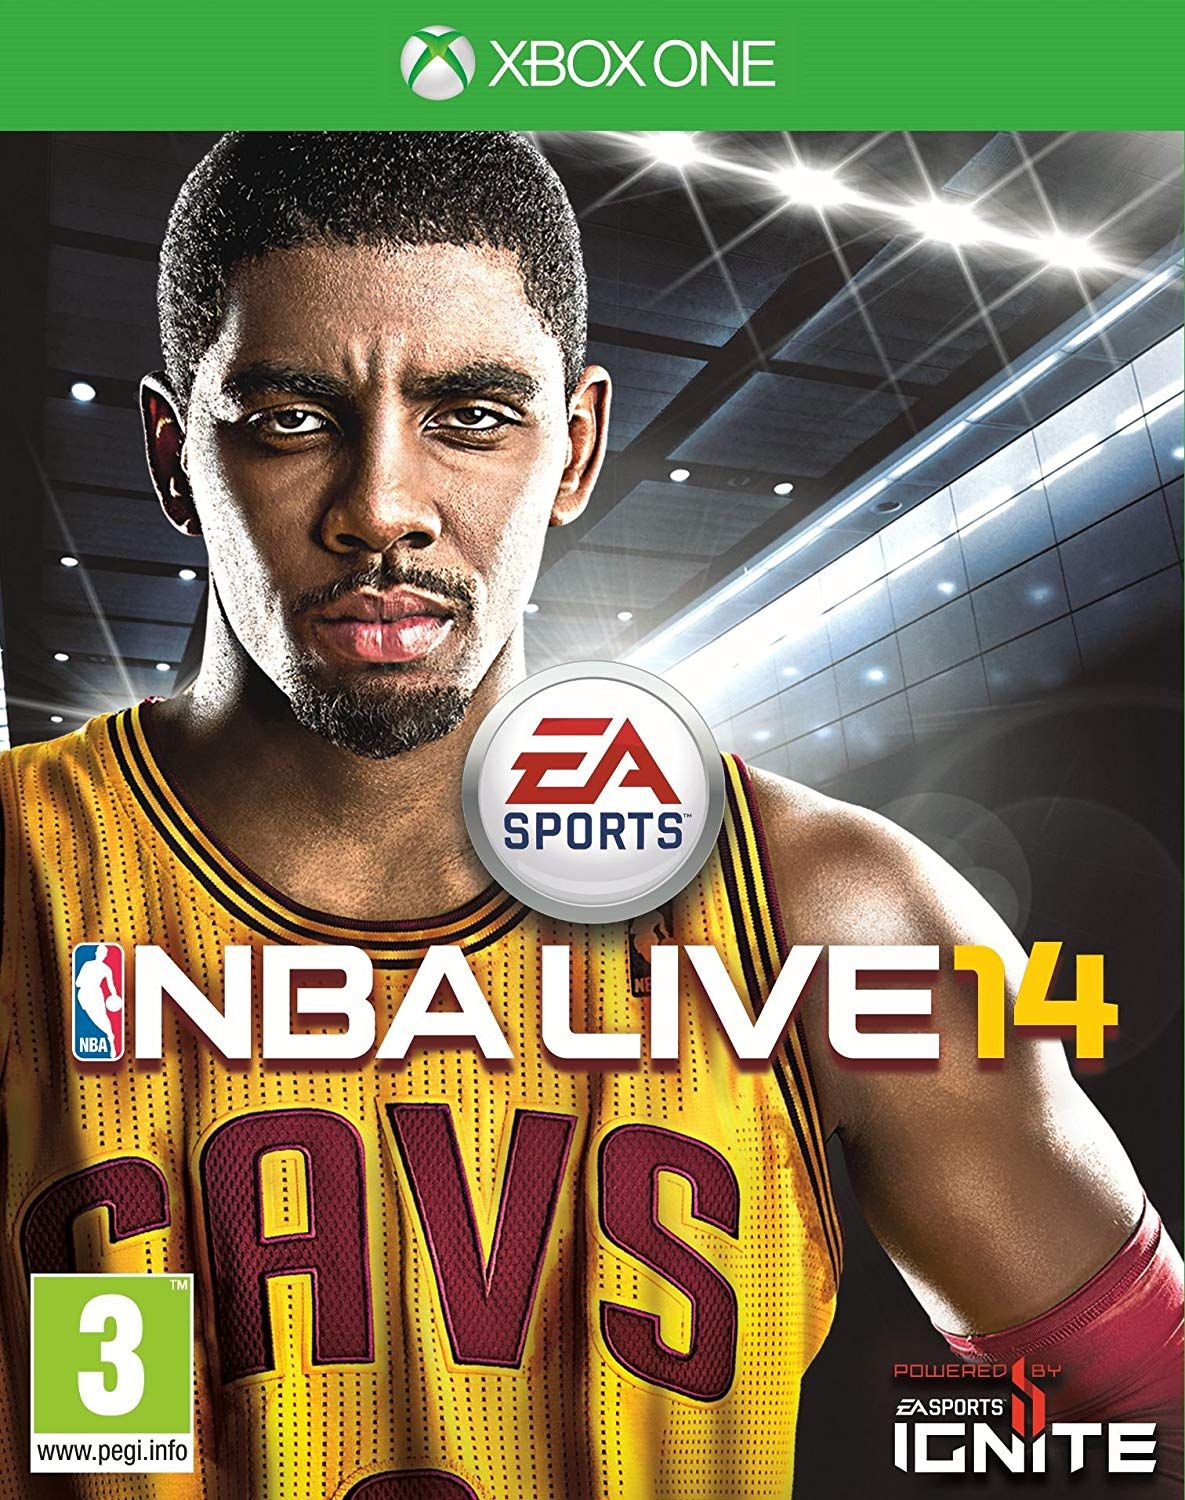 NBA Live 14 is a basketball video game released on the